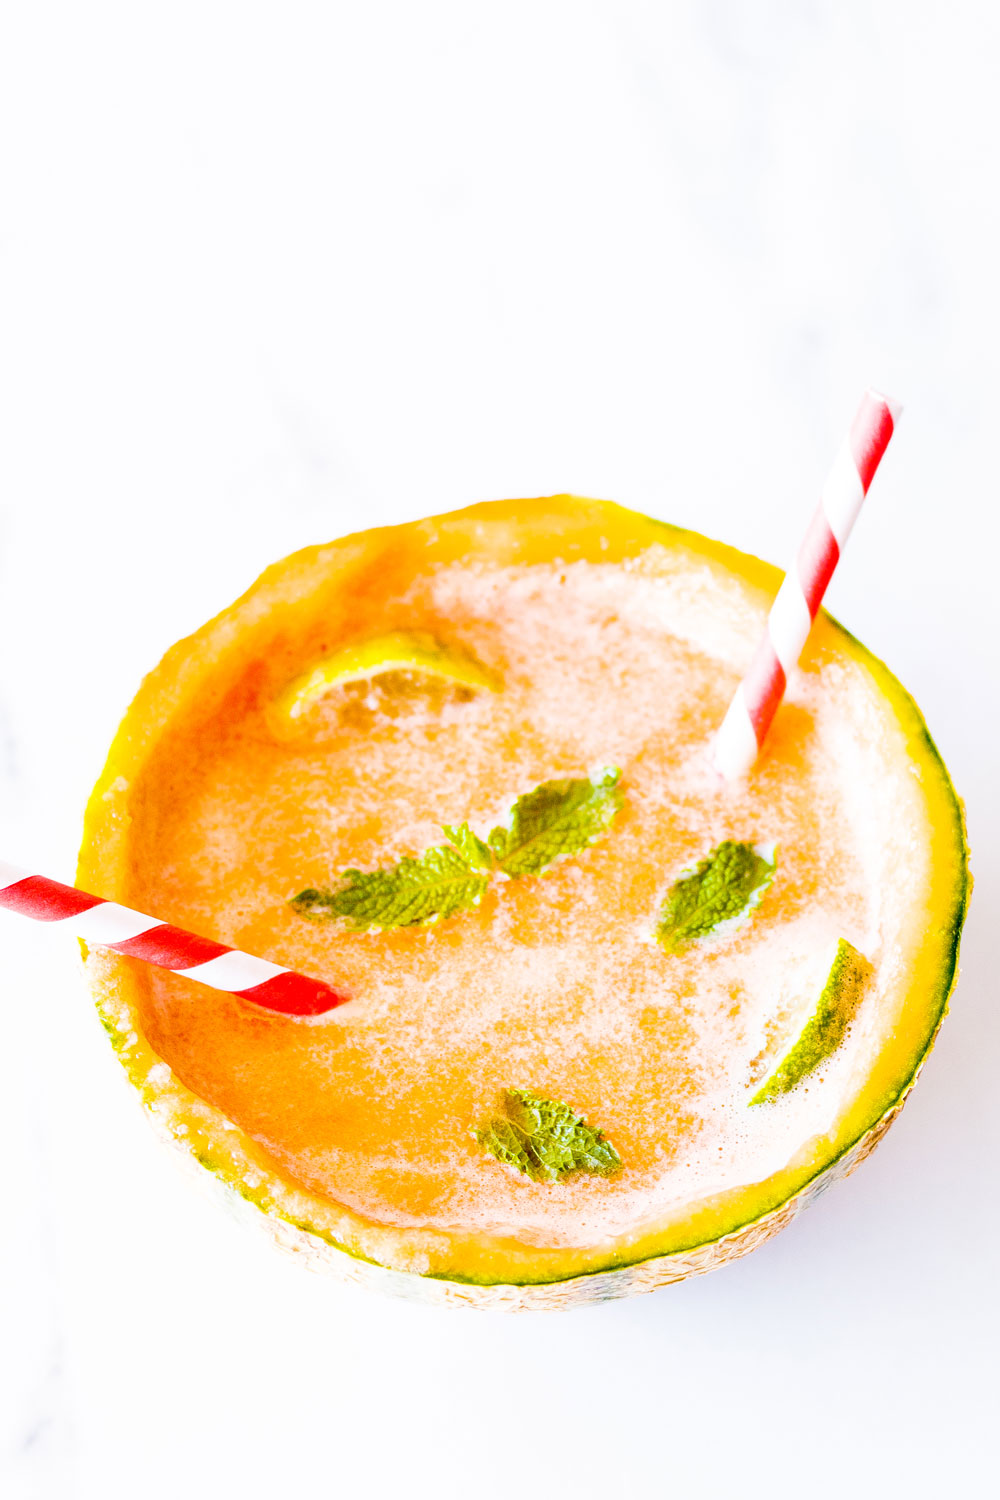 To get you in the spirit of summer, try this Citrus-Cantaloupe Mocktail Recipe, which only requires 4 ingredients and takes 5 minutes to whip up at home! https://www.spotebi.com/recipes/citrus-cantaloupe-mocktail-recipe/